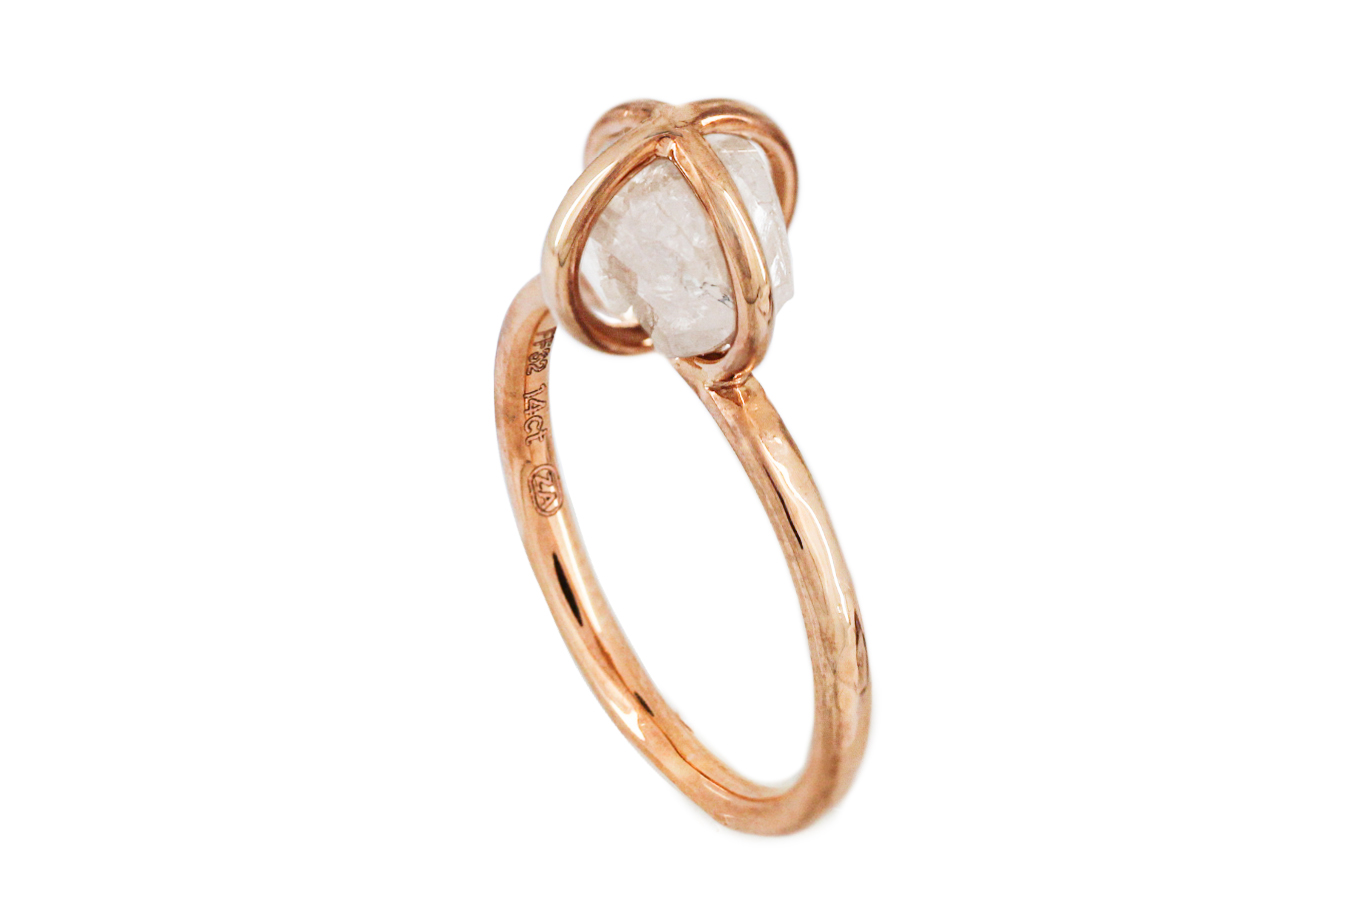 CAPE WHEEL in 14ct Rose Gold